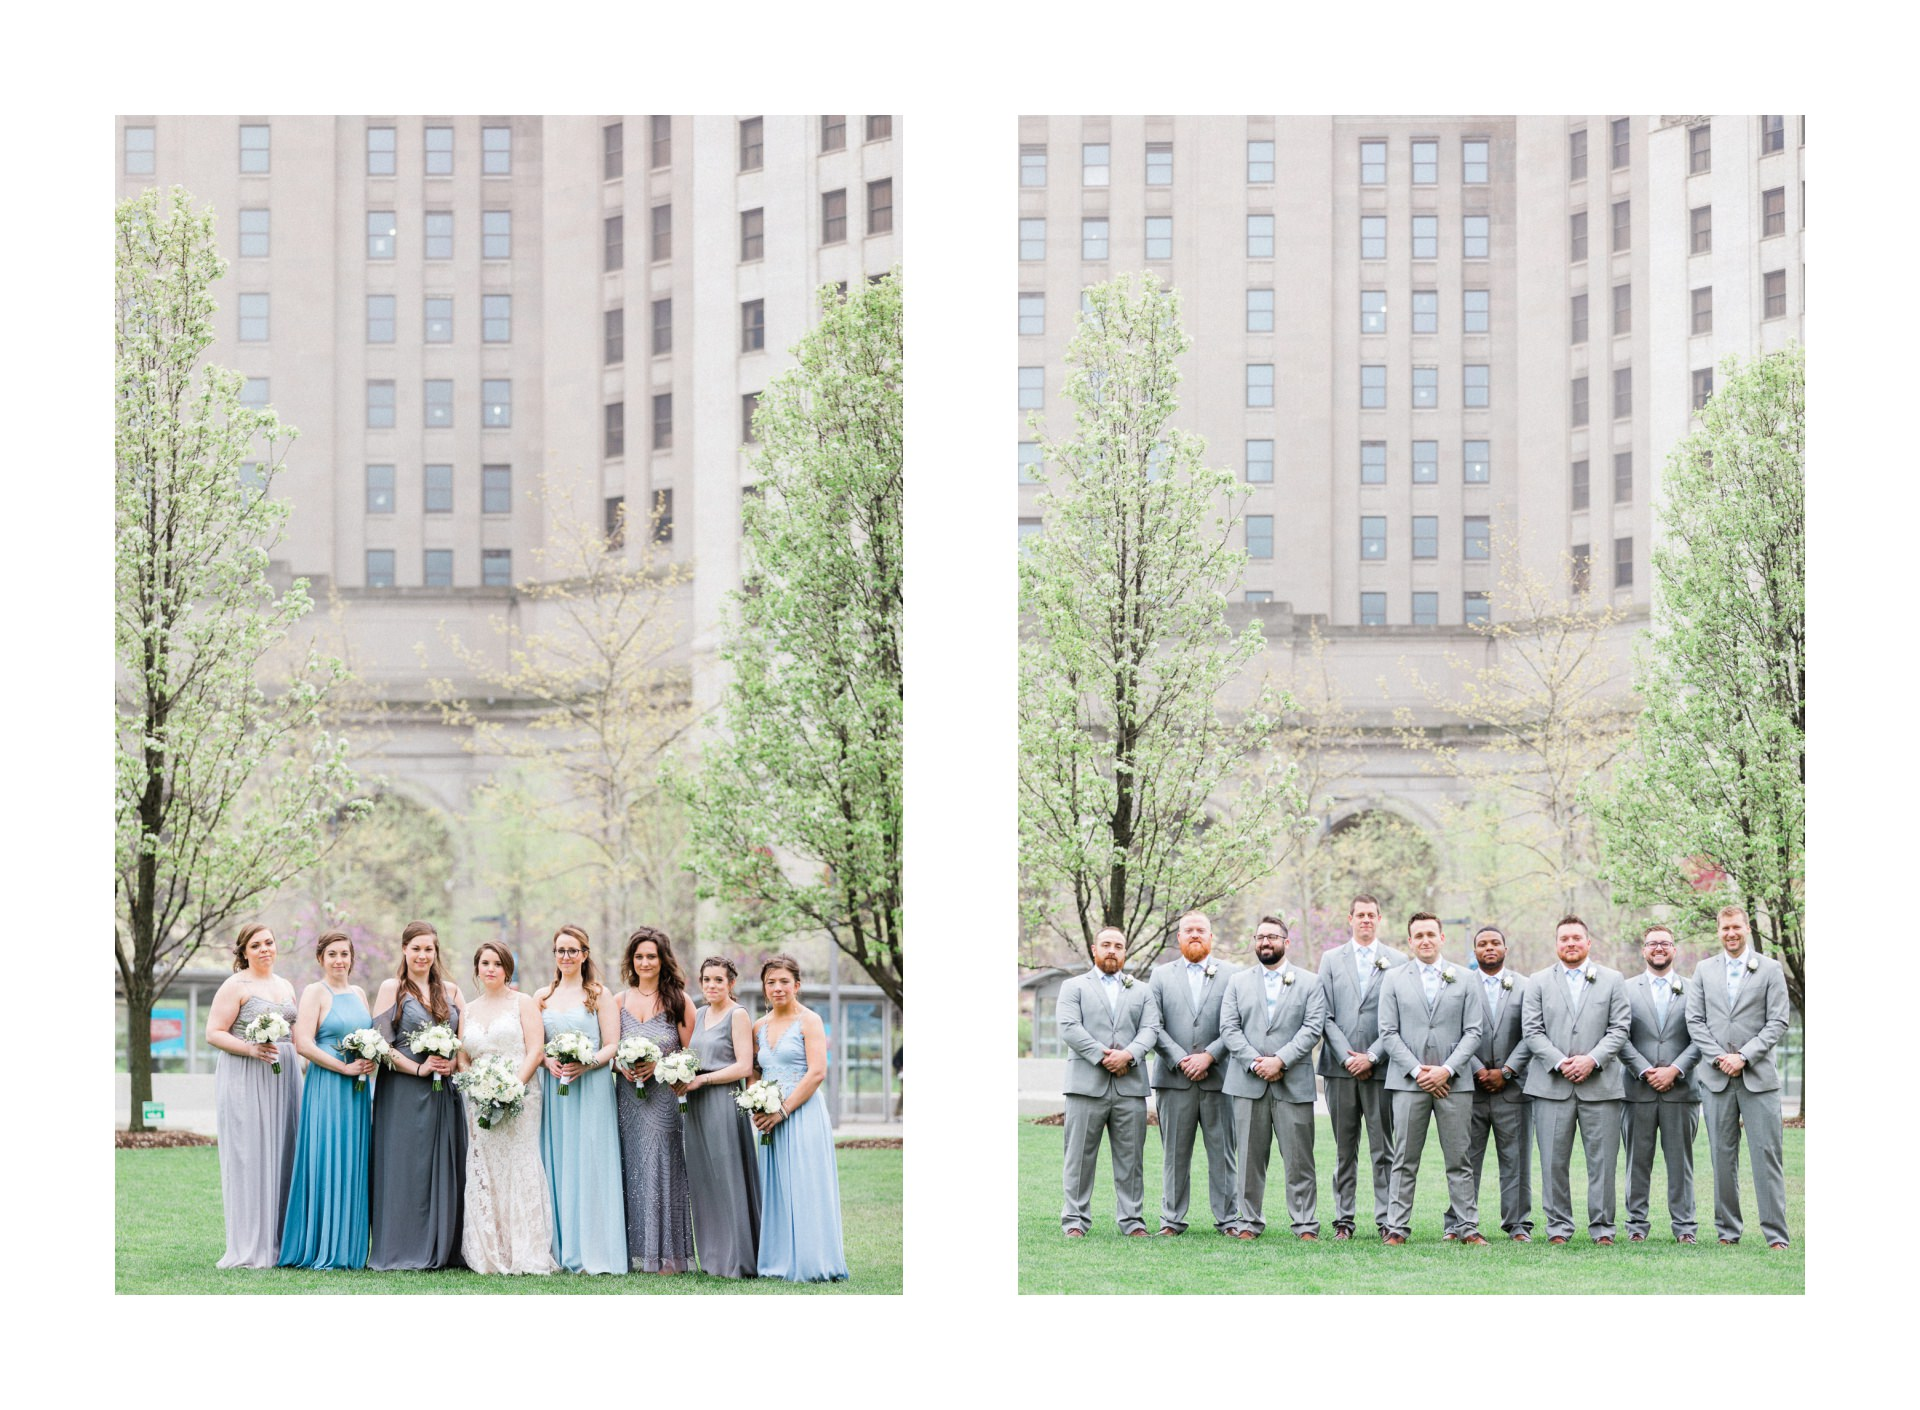 Windows on the River Cleveland Wedding Photographer 1 29.jpg